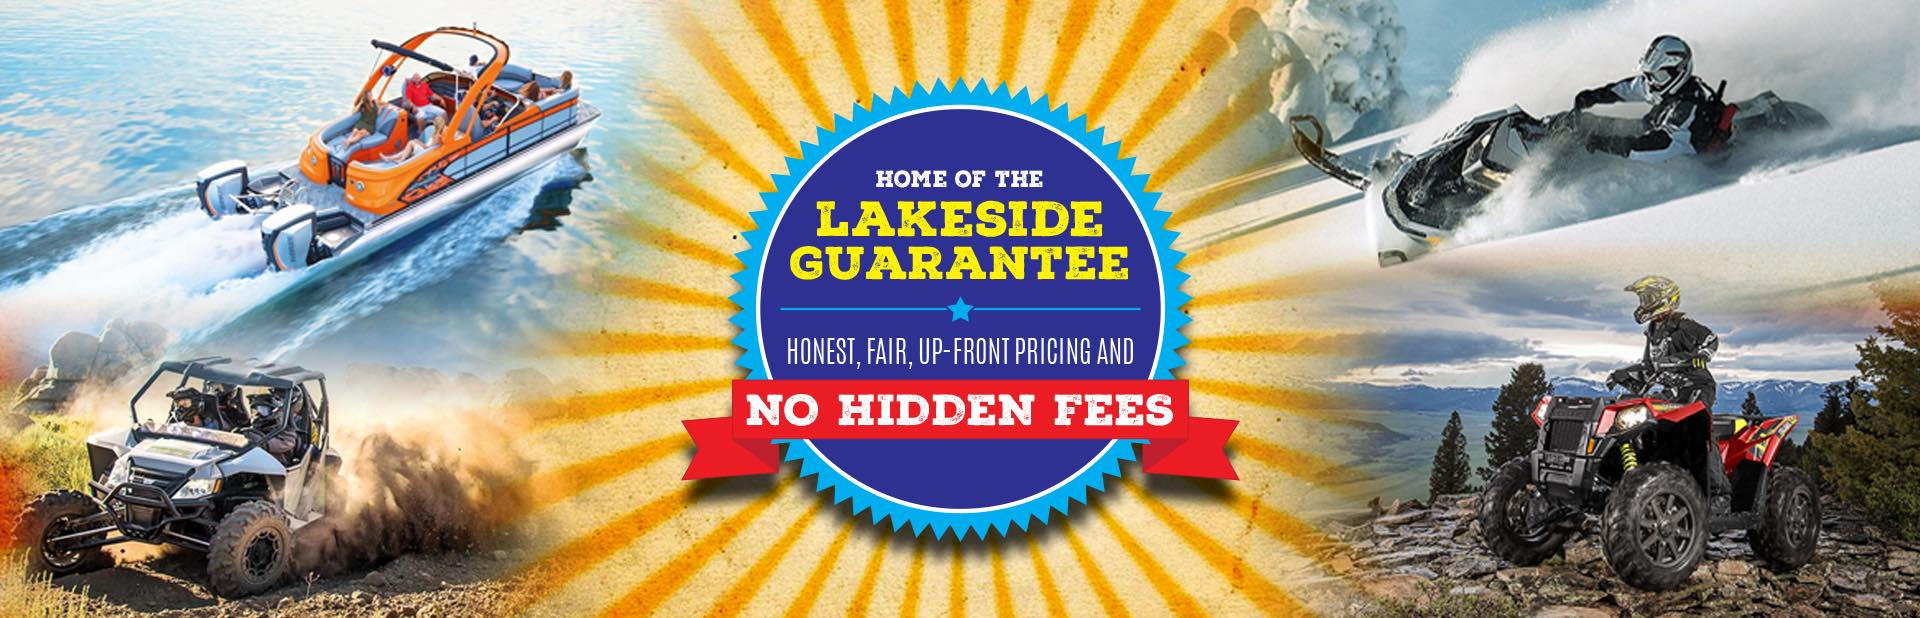 Home of the Lakeside Guarantee: Honest, Fair, Up-Front Pricing and No Hidden Fees